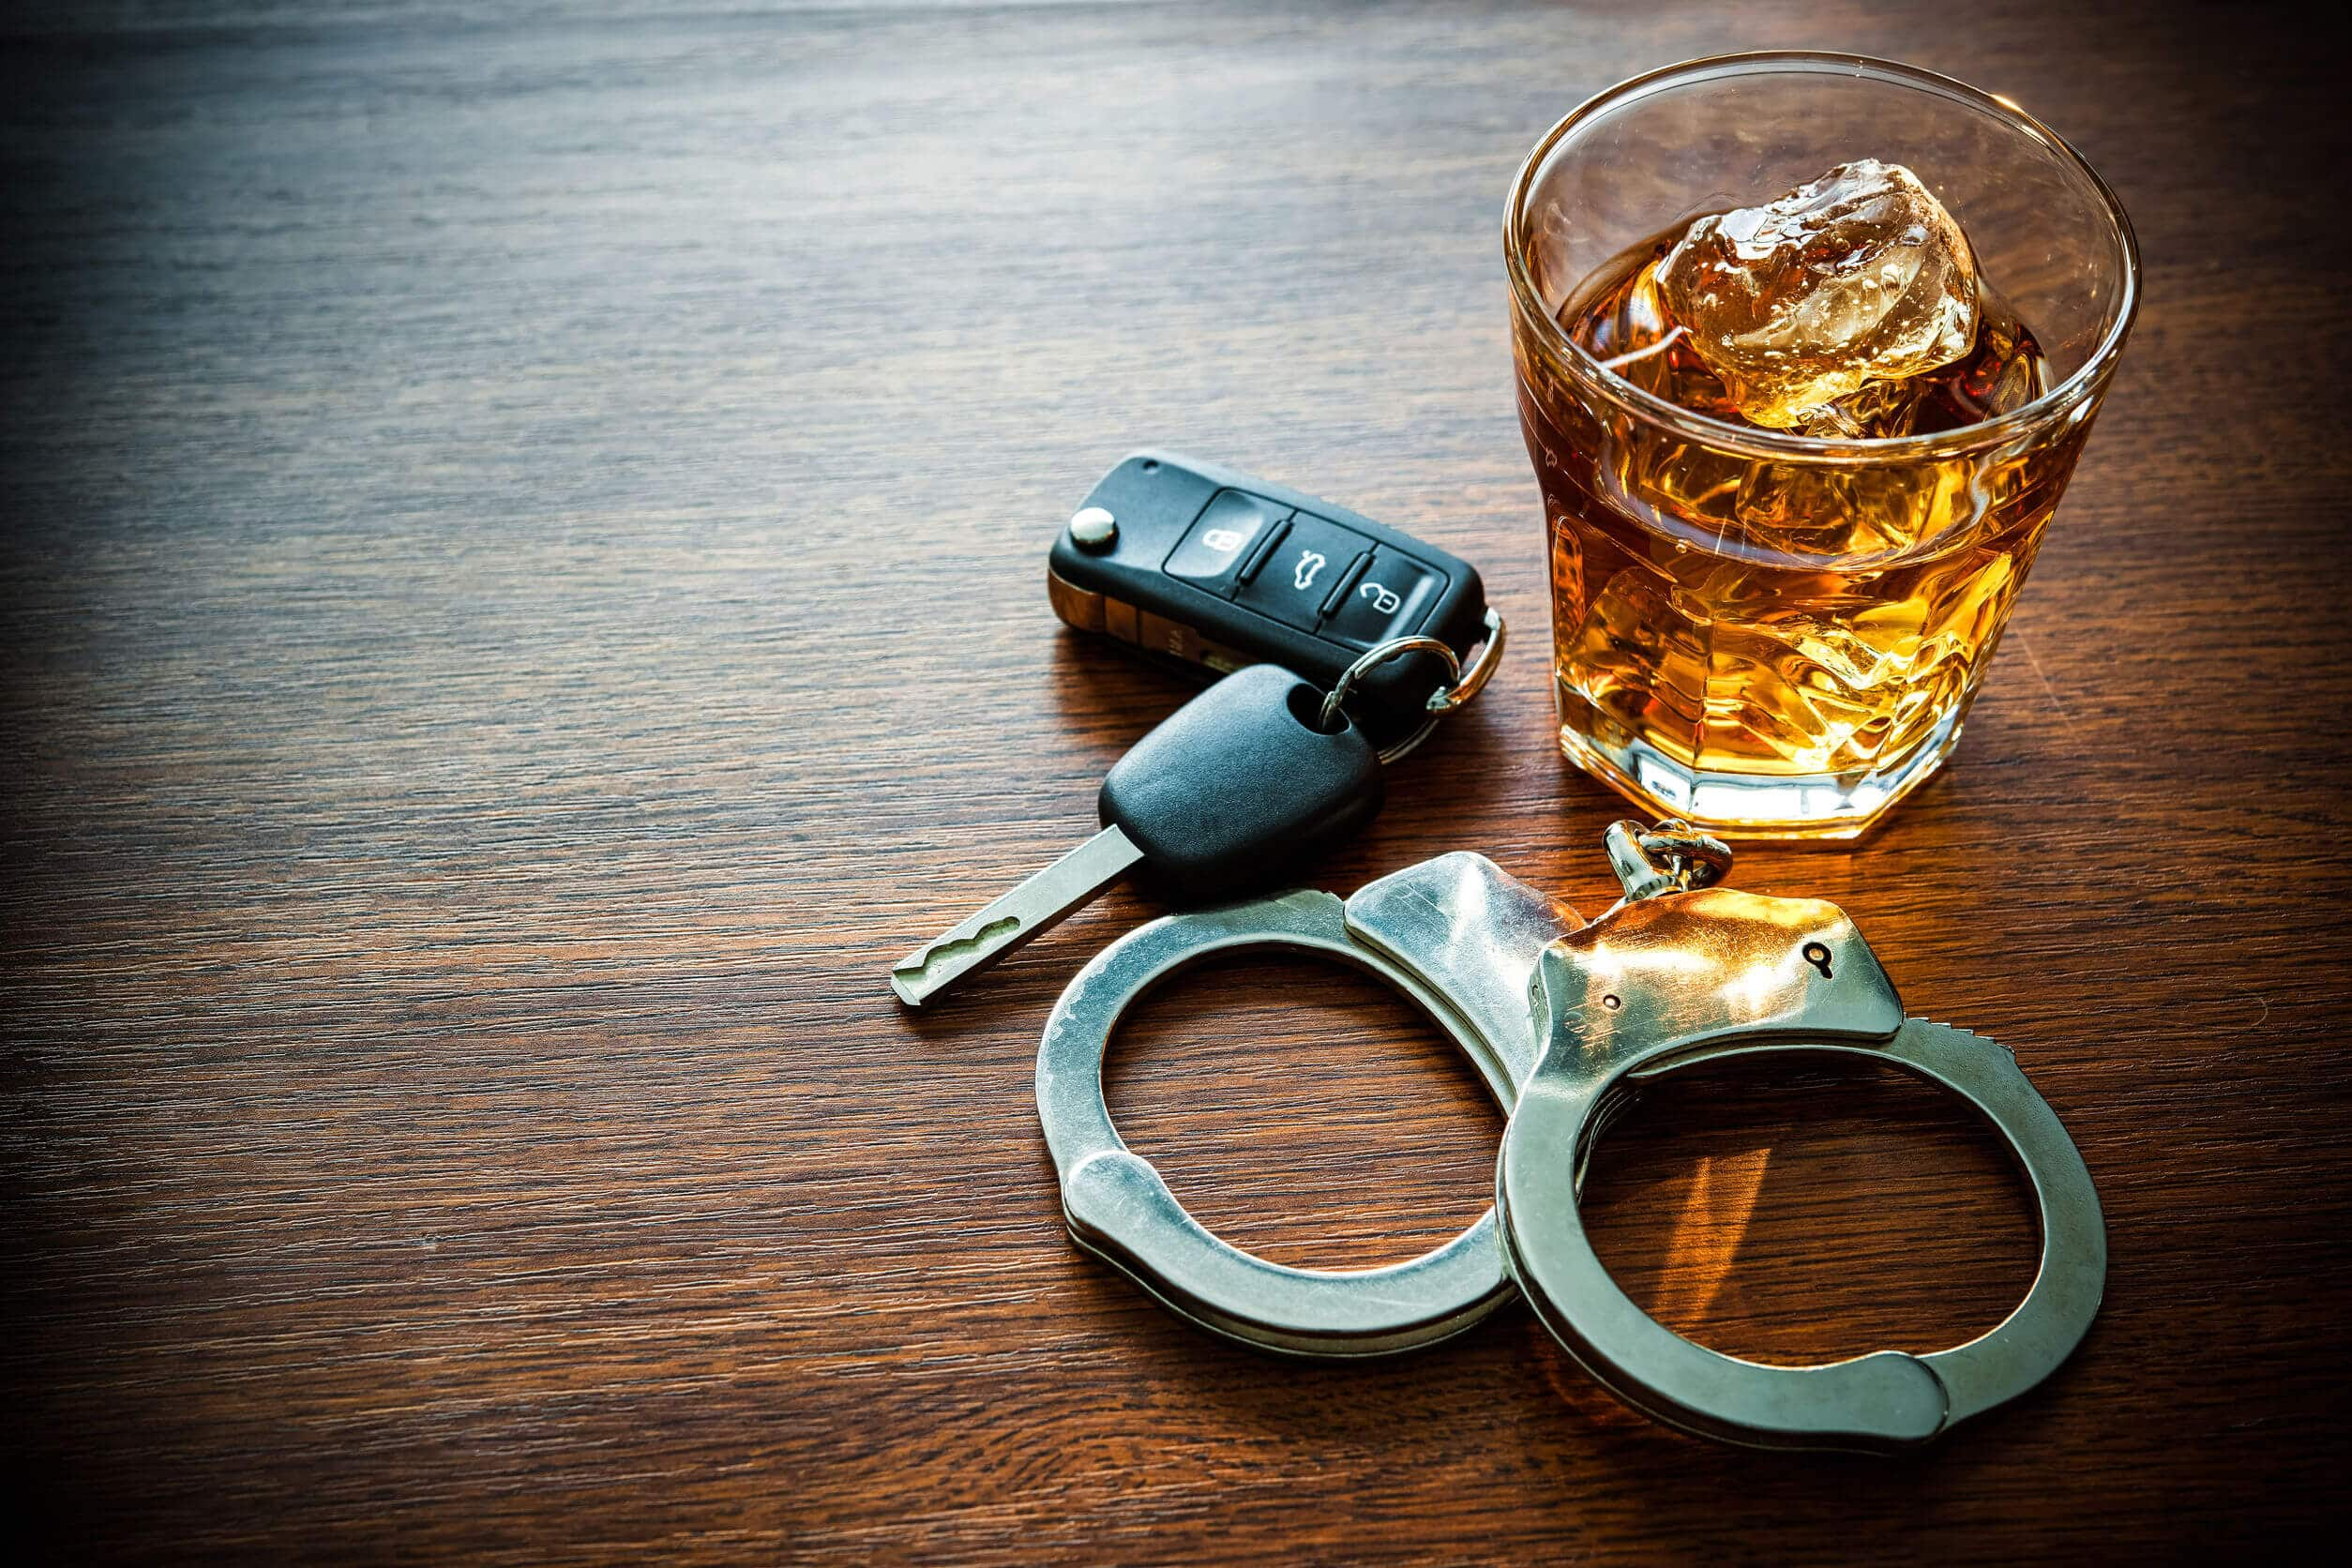 Area Man Gets Life in Prison After 10th DWI